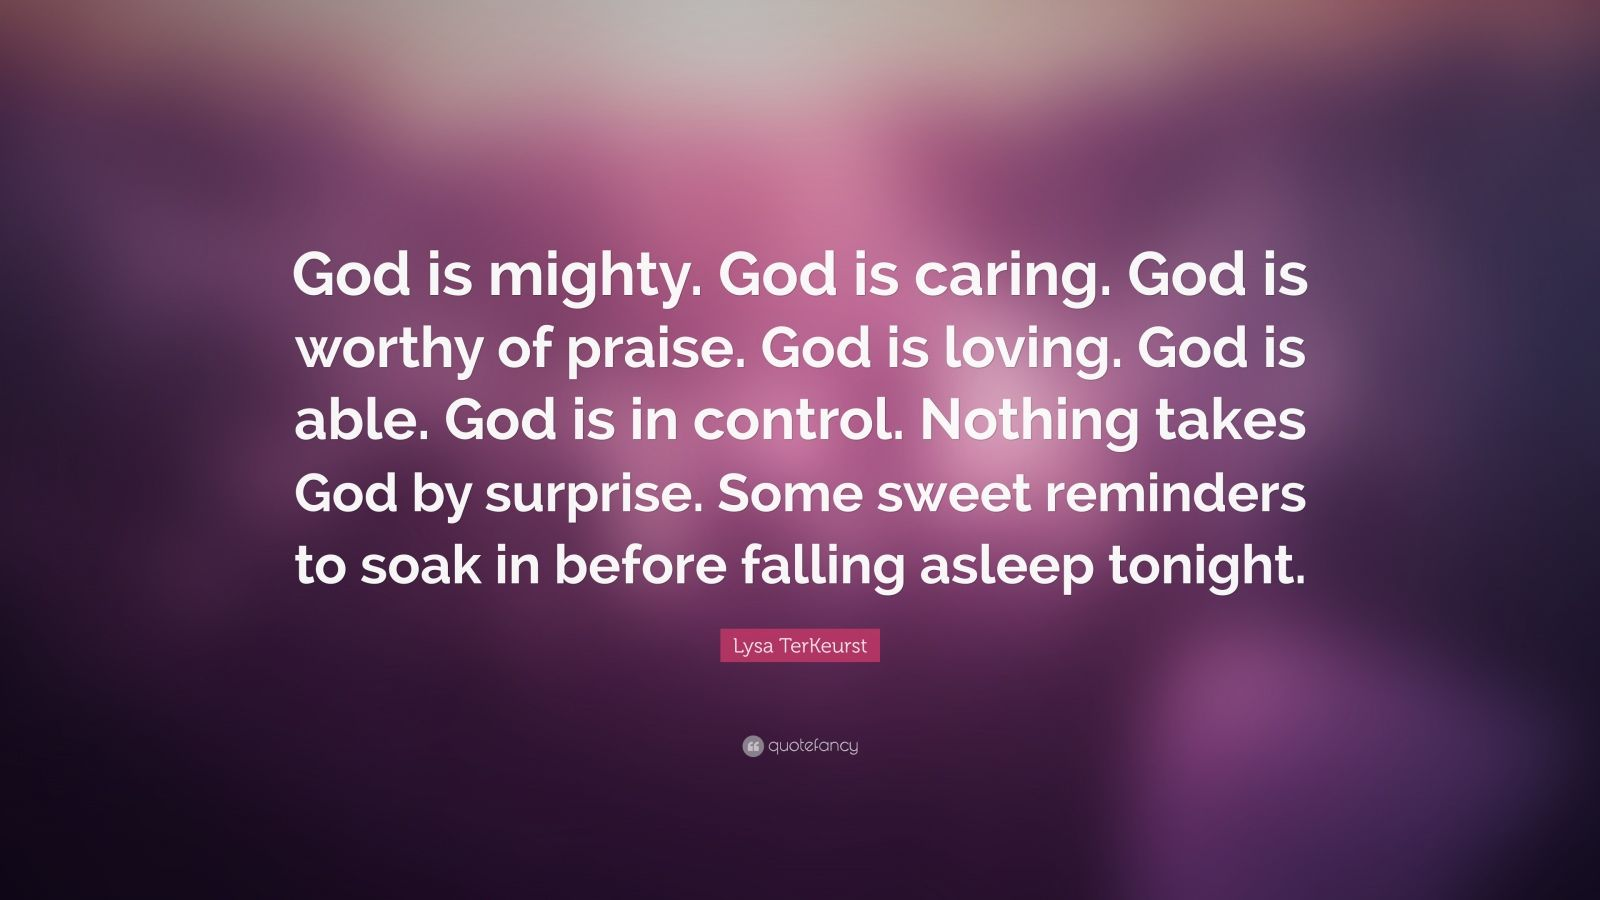 "Lysa TerKeurst Quote: ""God is mighty. God is caring. God is worthy of praise. God is loving. God is able. God is in control. Nothing takes God by surprise. Some sweet reminders to soak in before falling asleep tonight."""